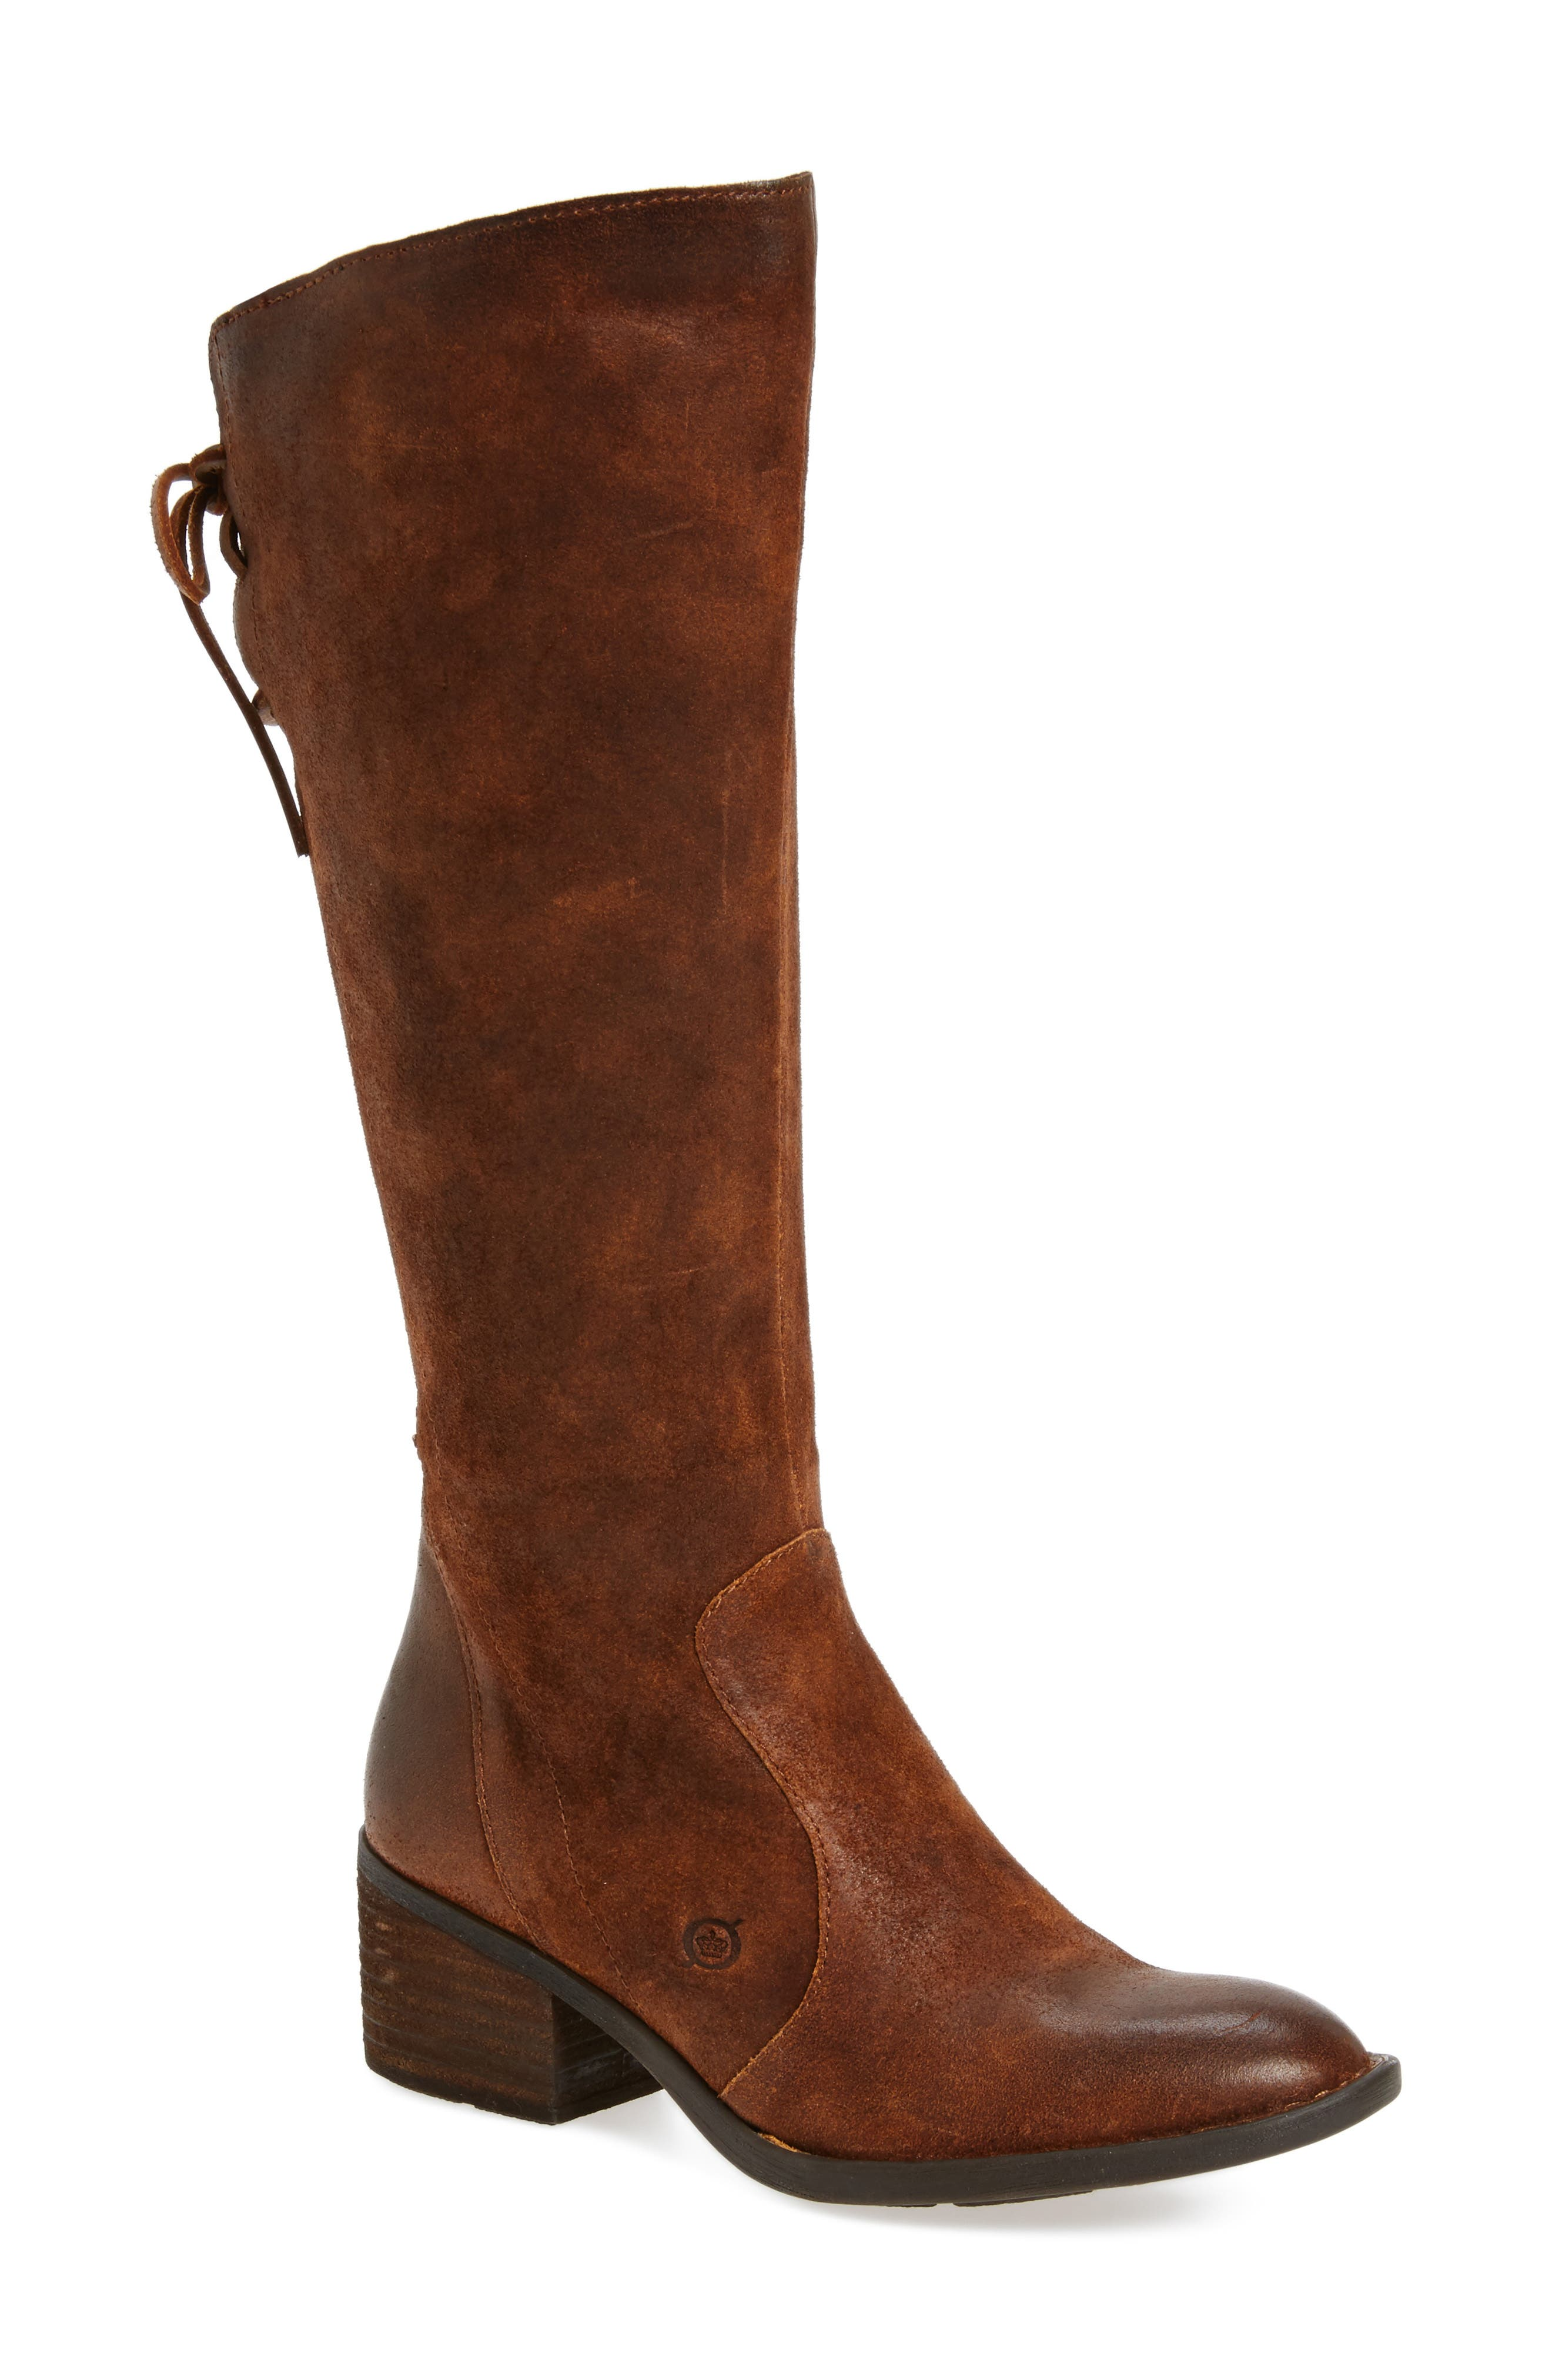 Felicia Knee High Boot,                         Main,                         color, Rust Distressed Leather